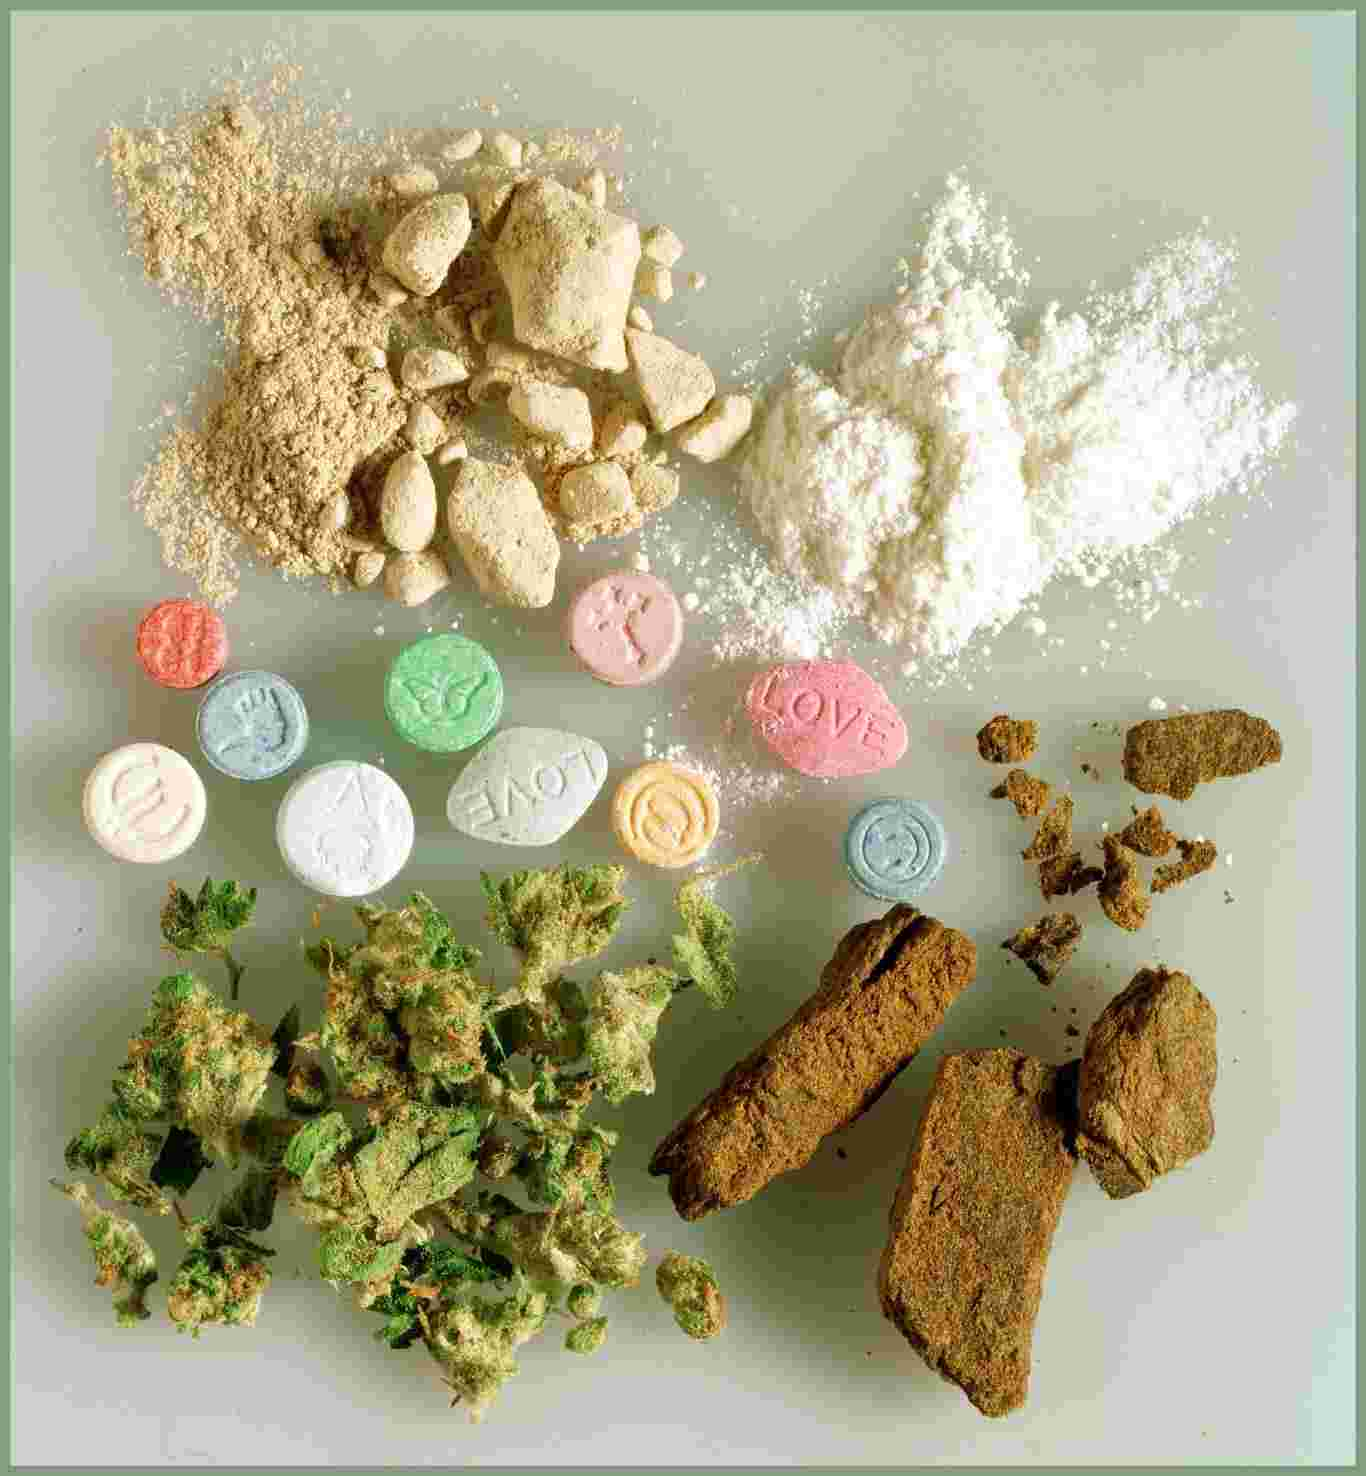 Harmful drugs. Different types of drugs .